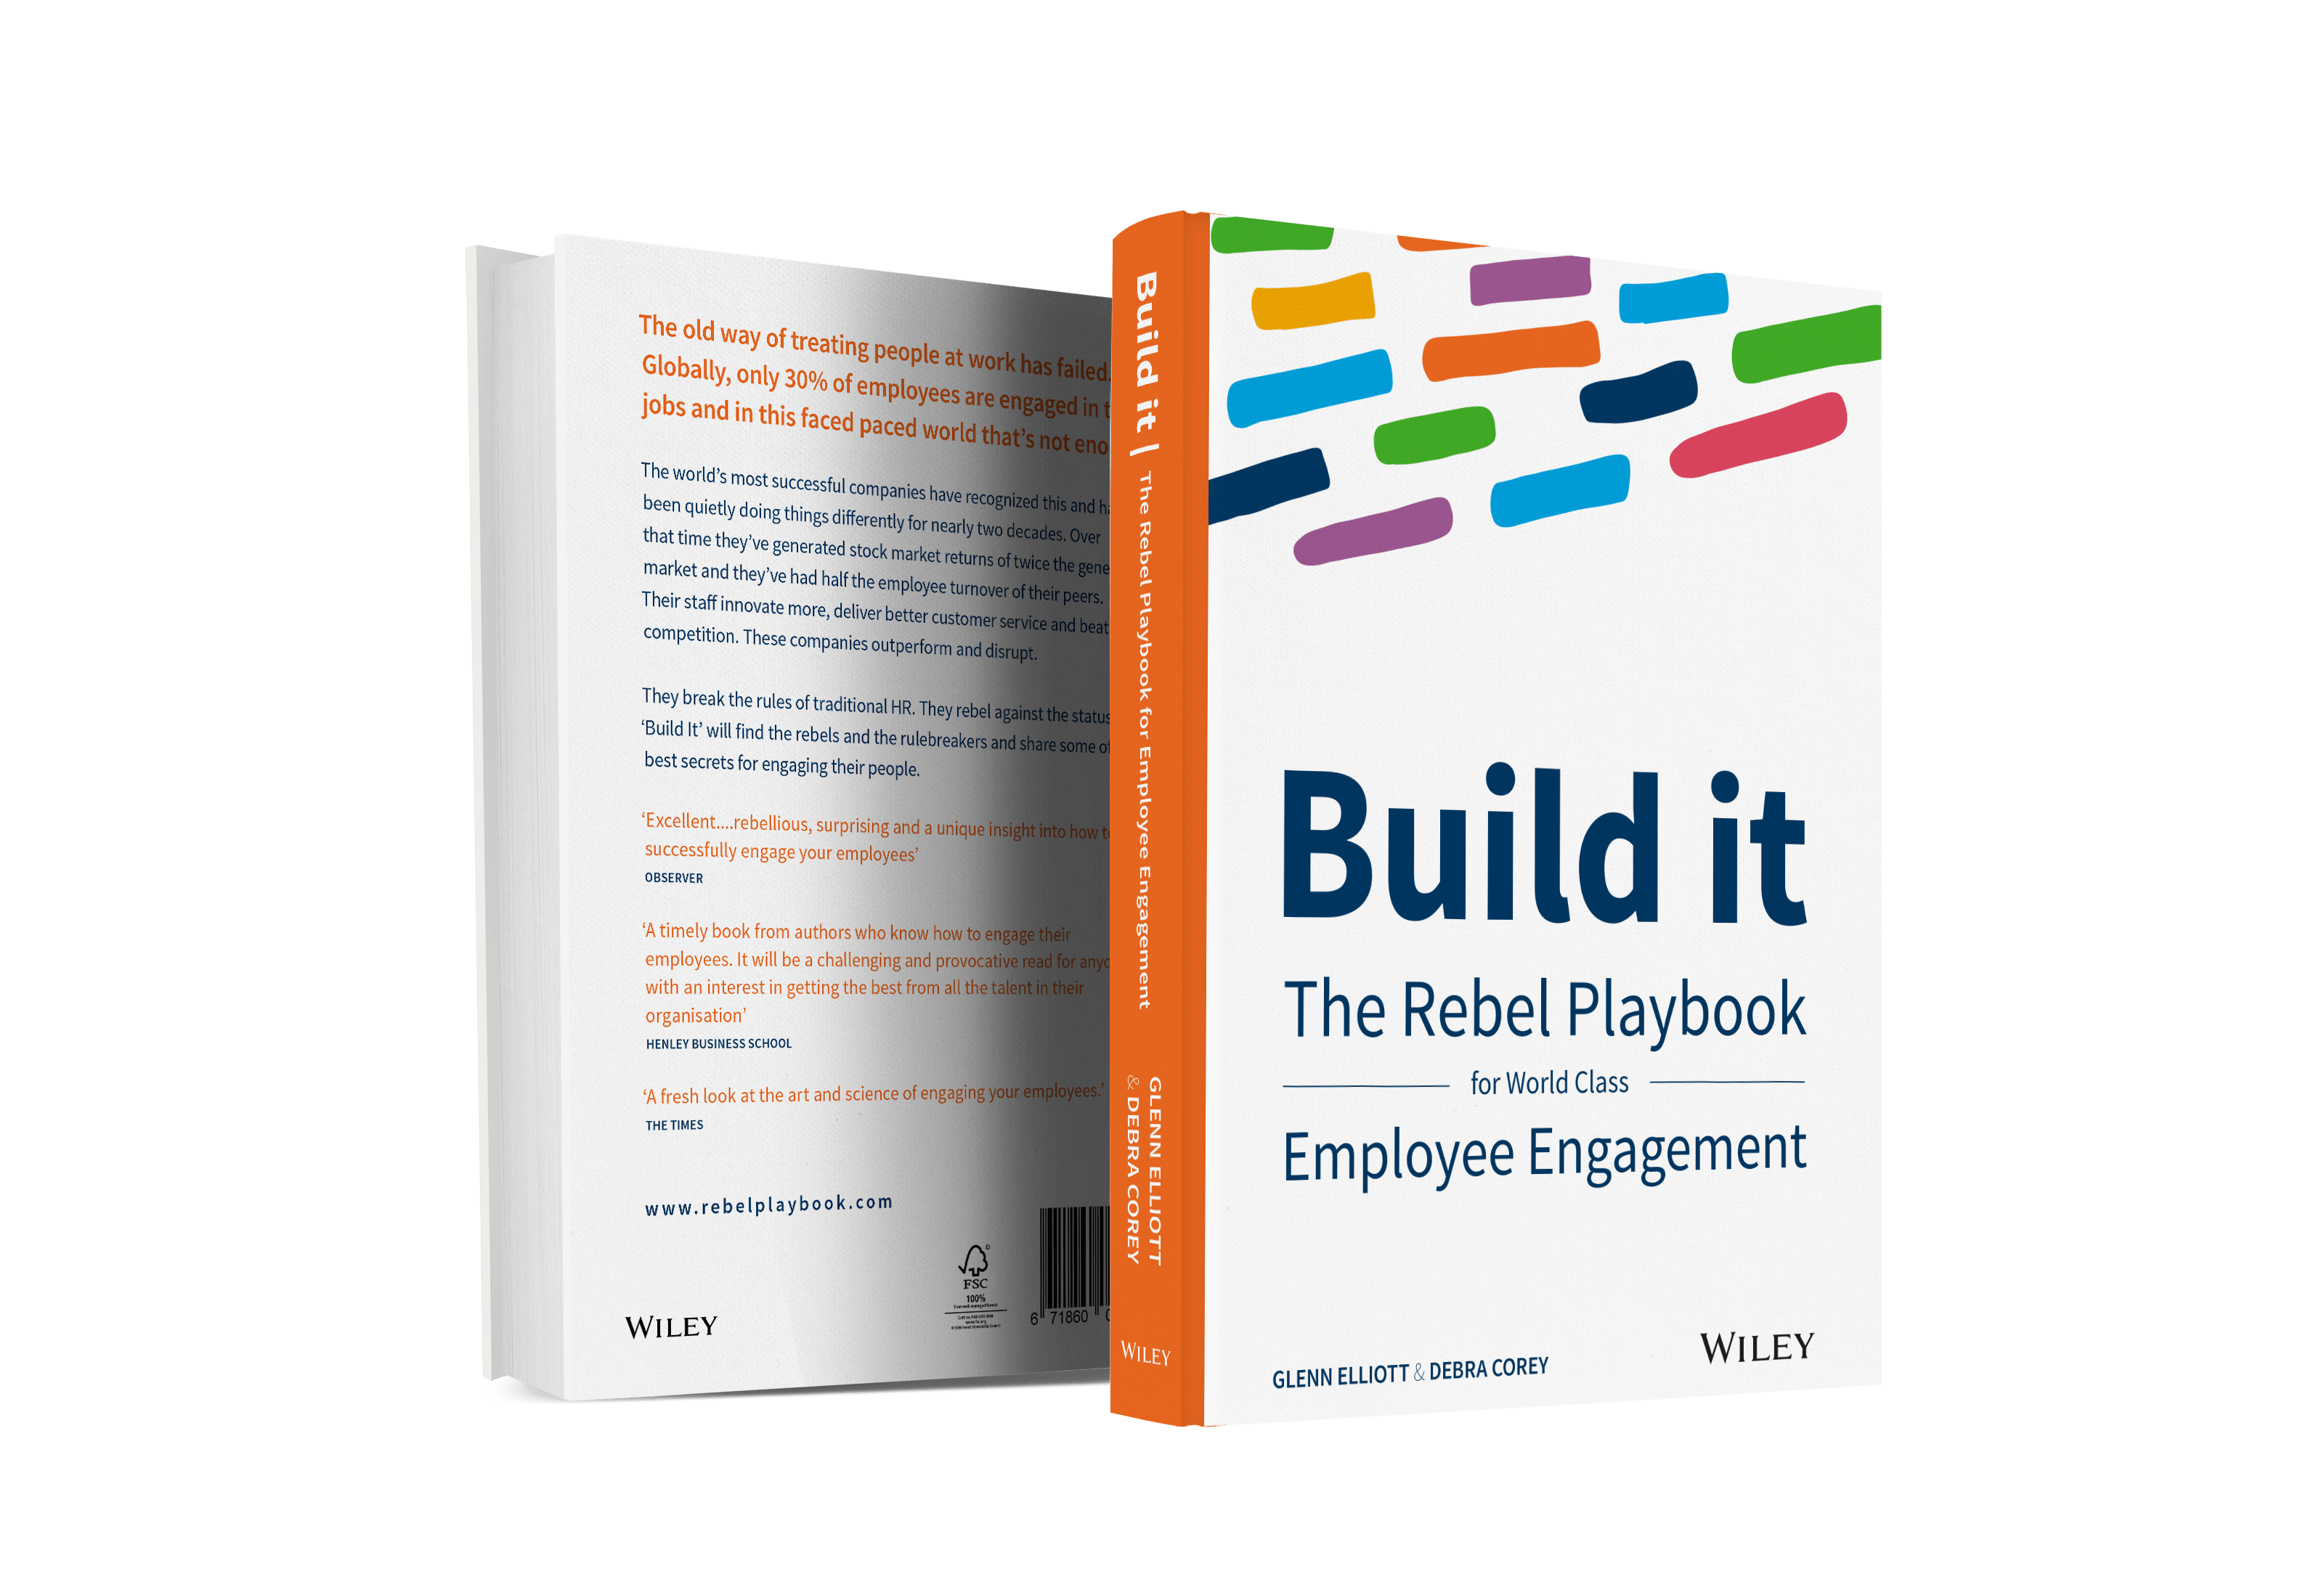 build-it-rebel-playbook-employee-engagement.png